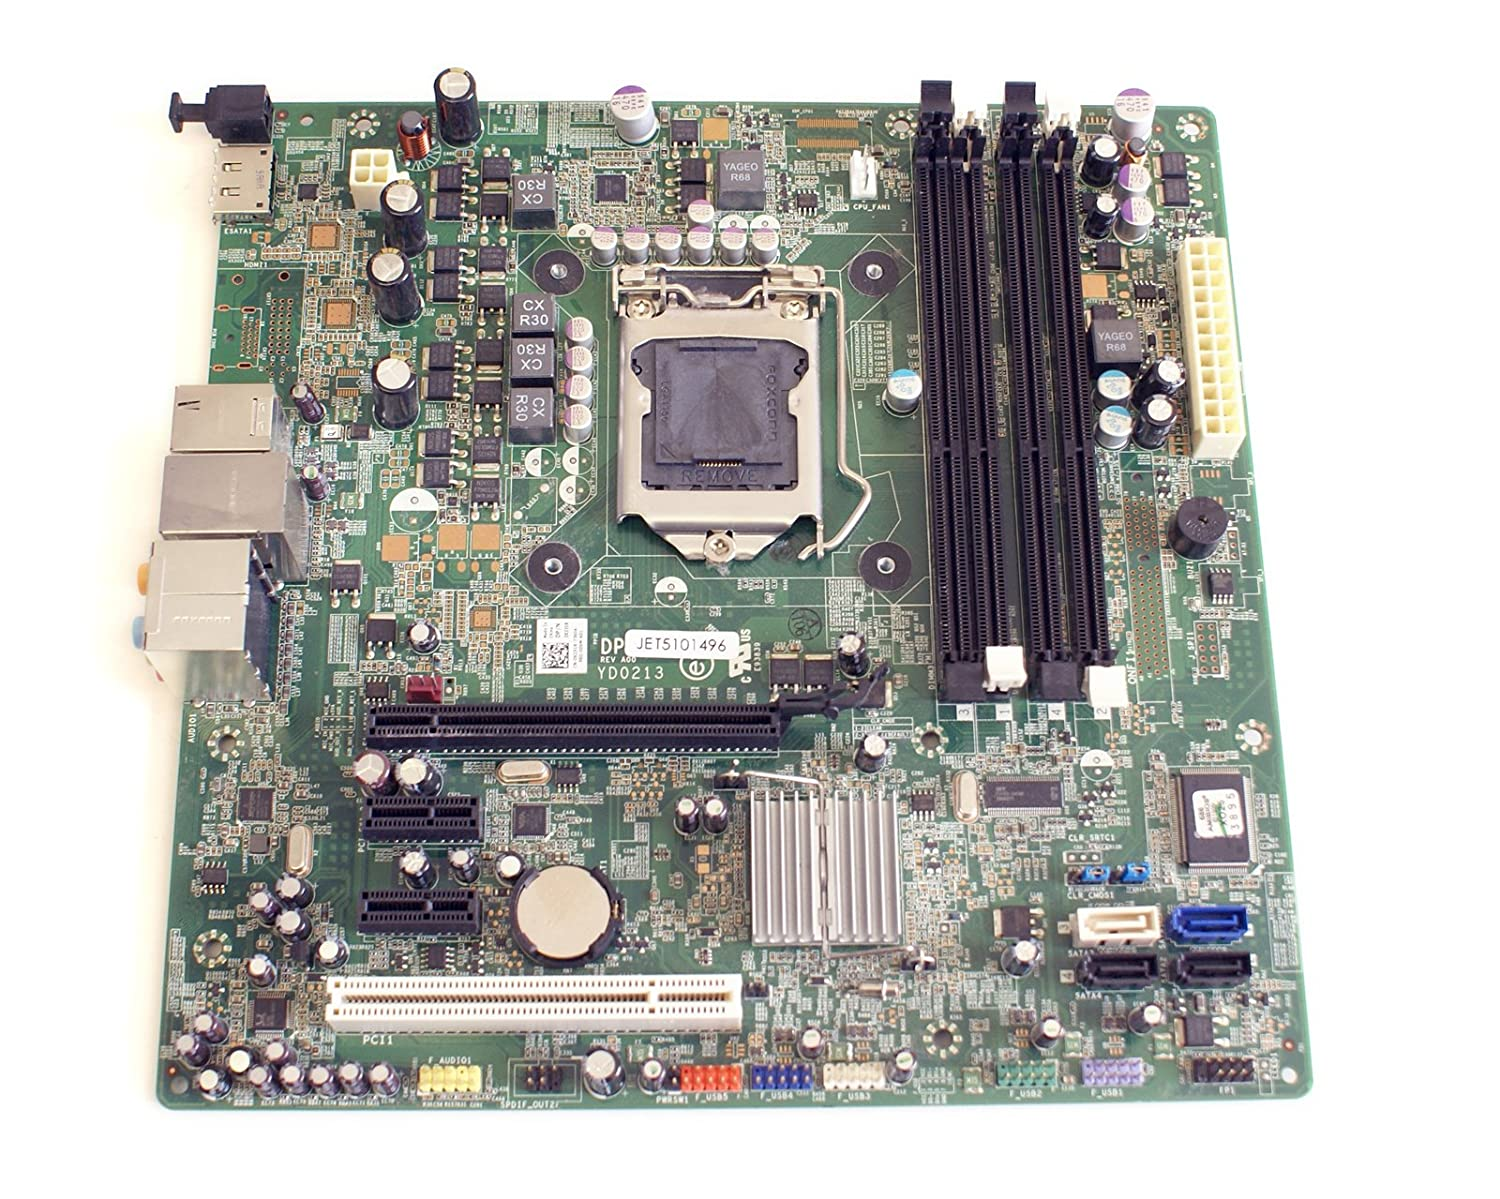 81CwsSwcKML._SL1500_ amazon com genuine x231r,0x231r dell motherboard mainboard for  at readyjetset.co